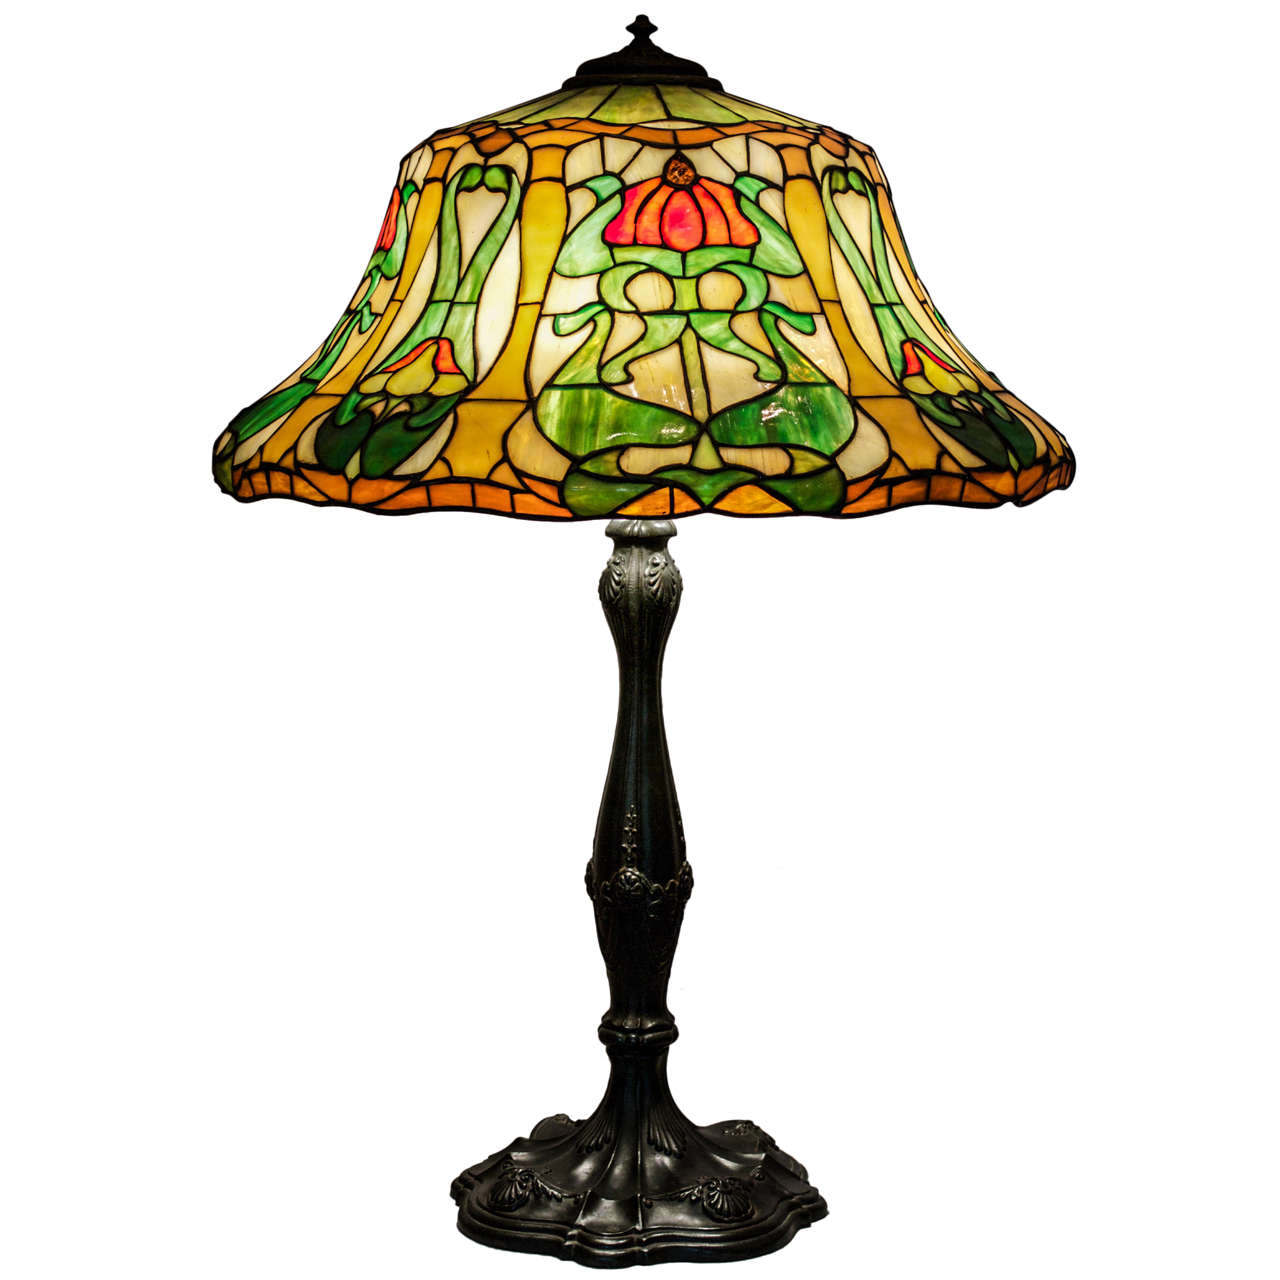 Wilkinson leaded glass table lamp at 1stdibs wilkinson leaded glass table lamp for sale aloadofball Gallery